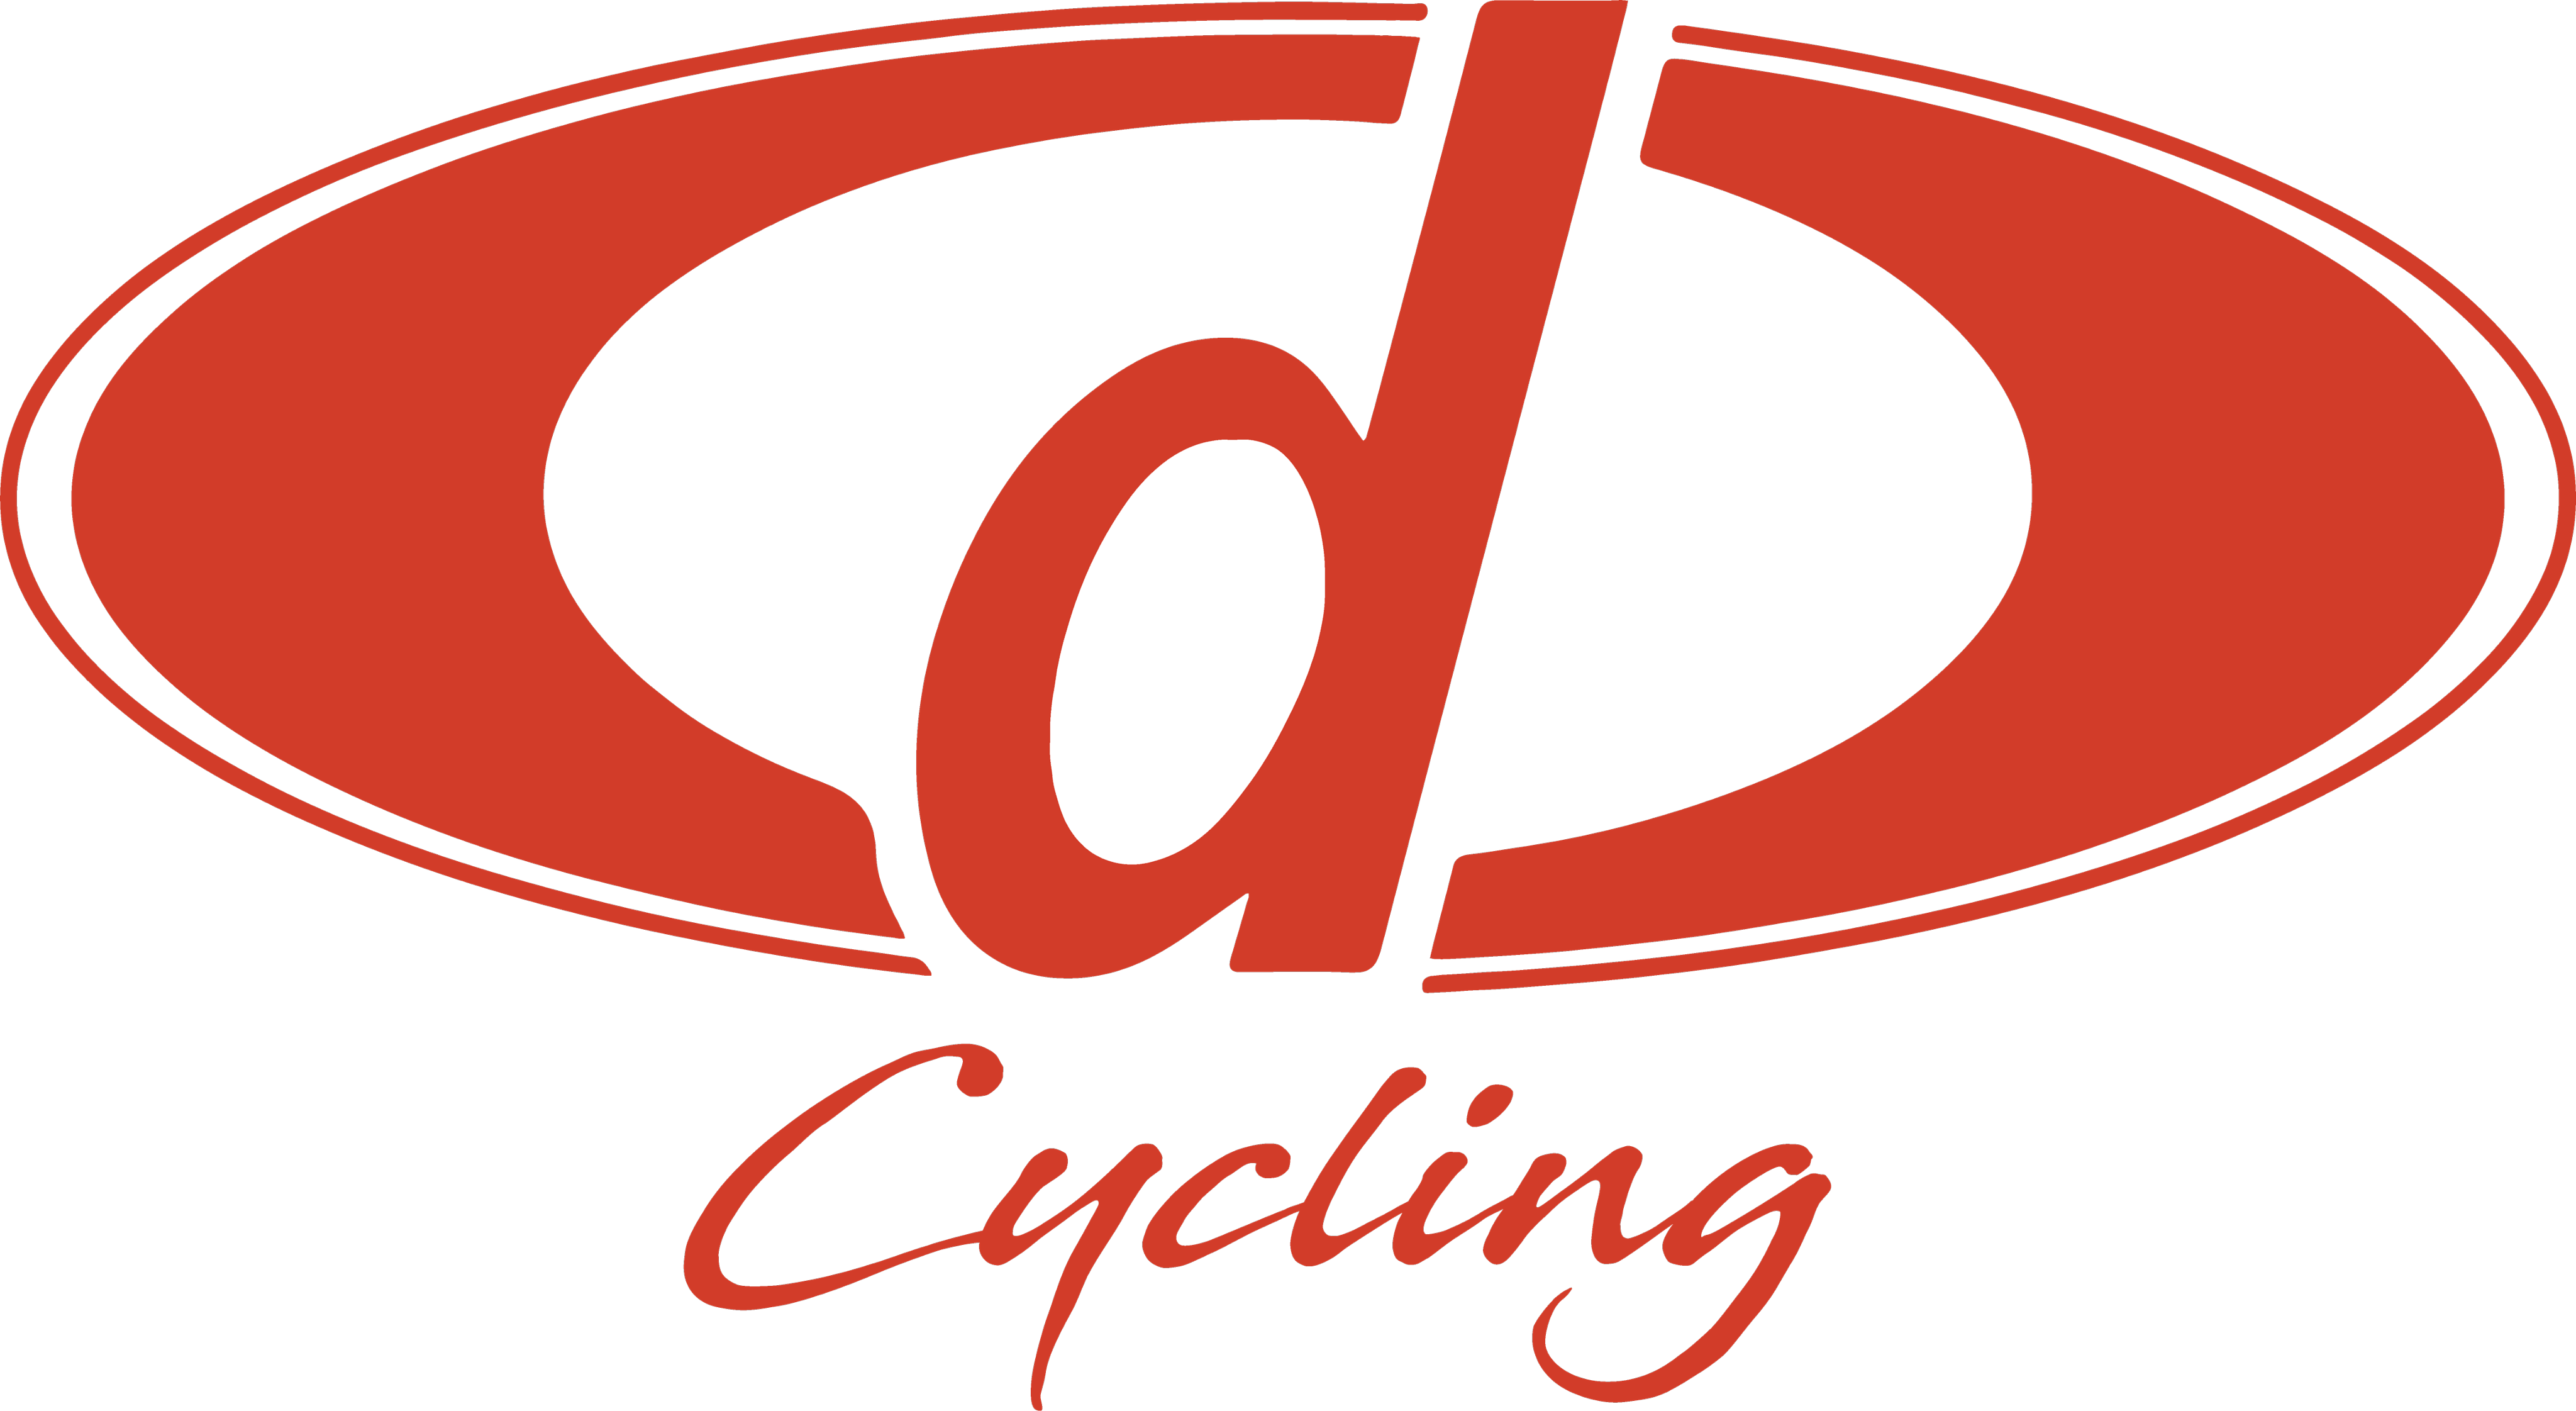 ODCycling